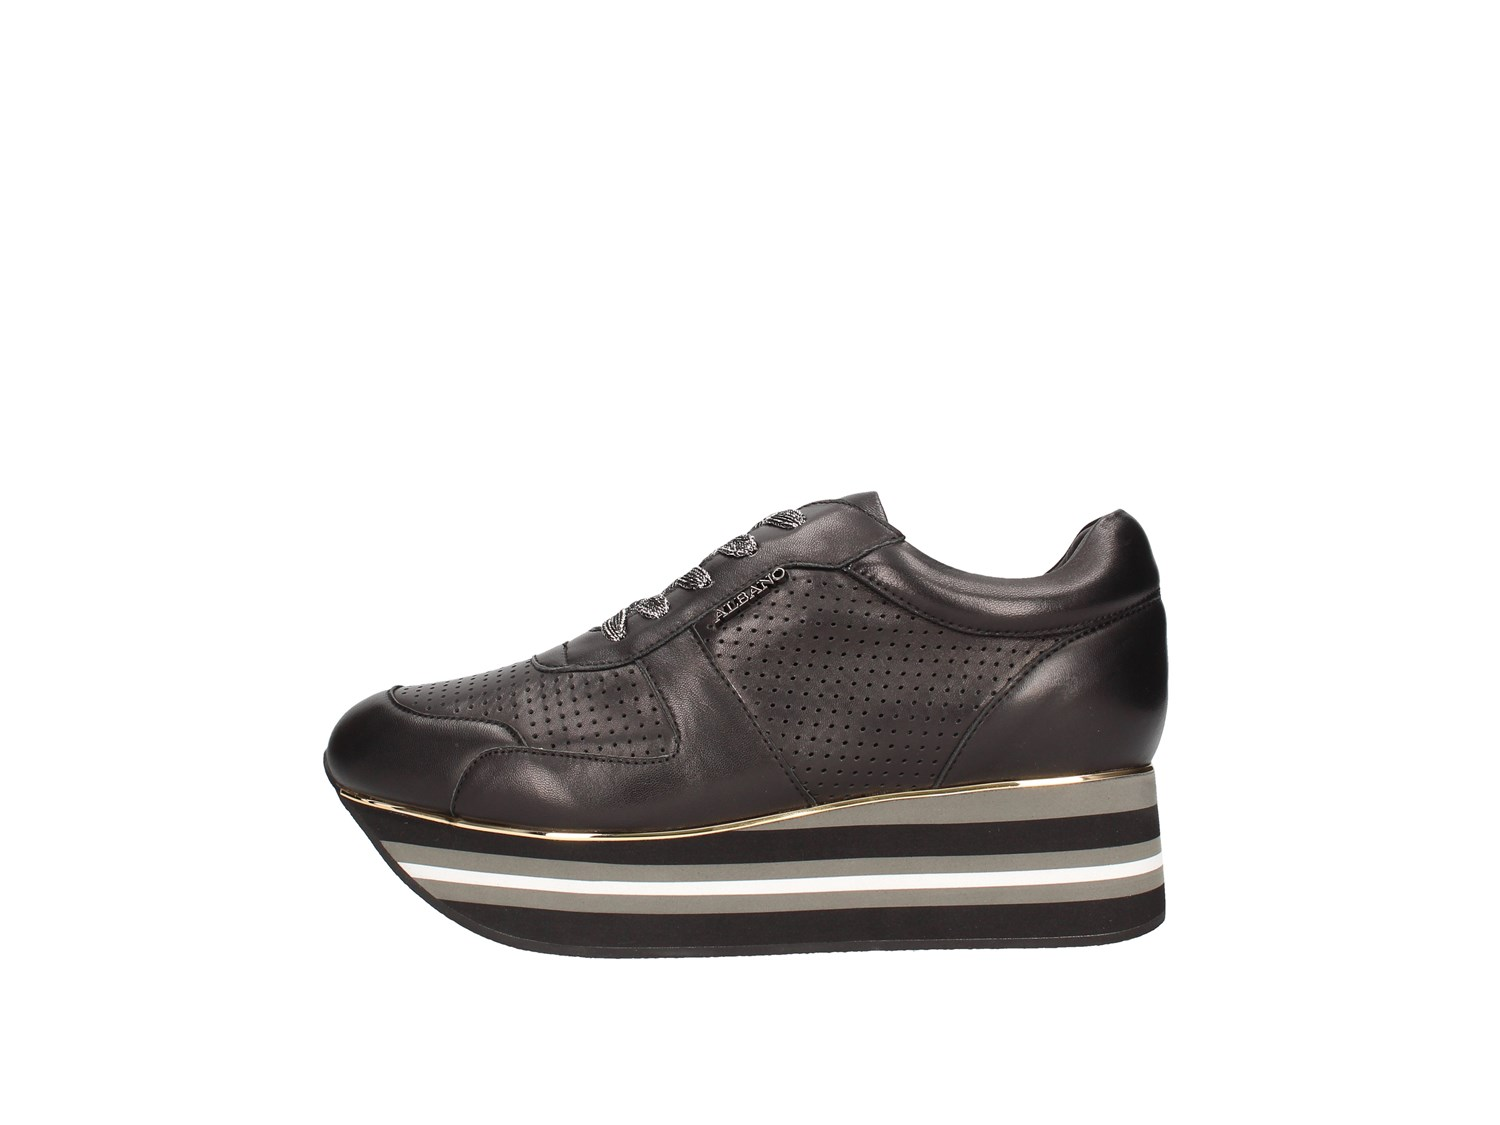 Albano 8164 Black Shoes Women Sneakers 20826840d9f1